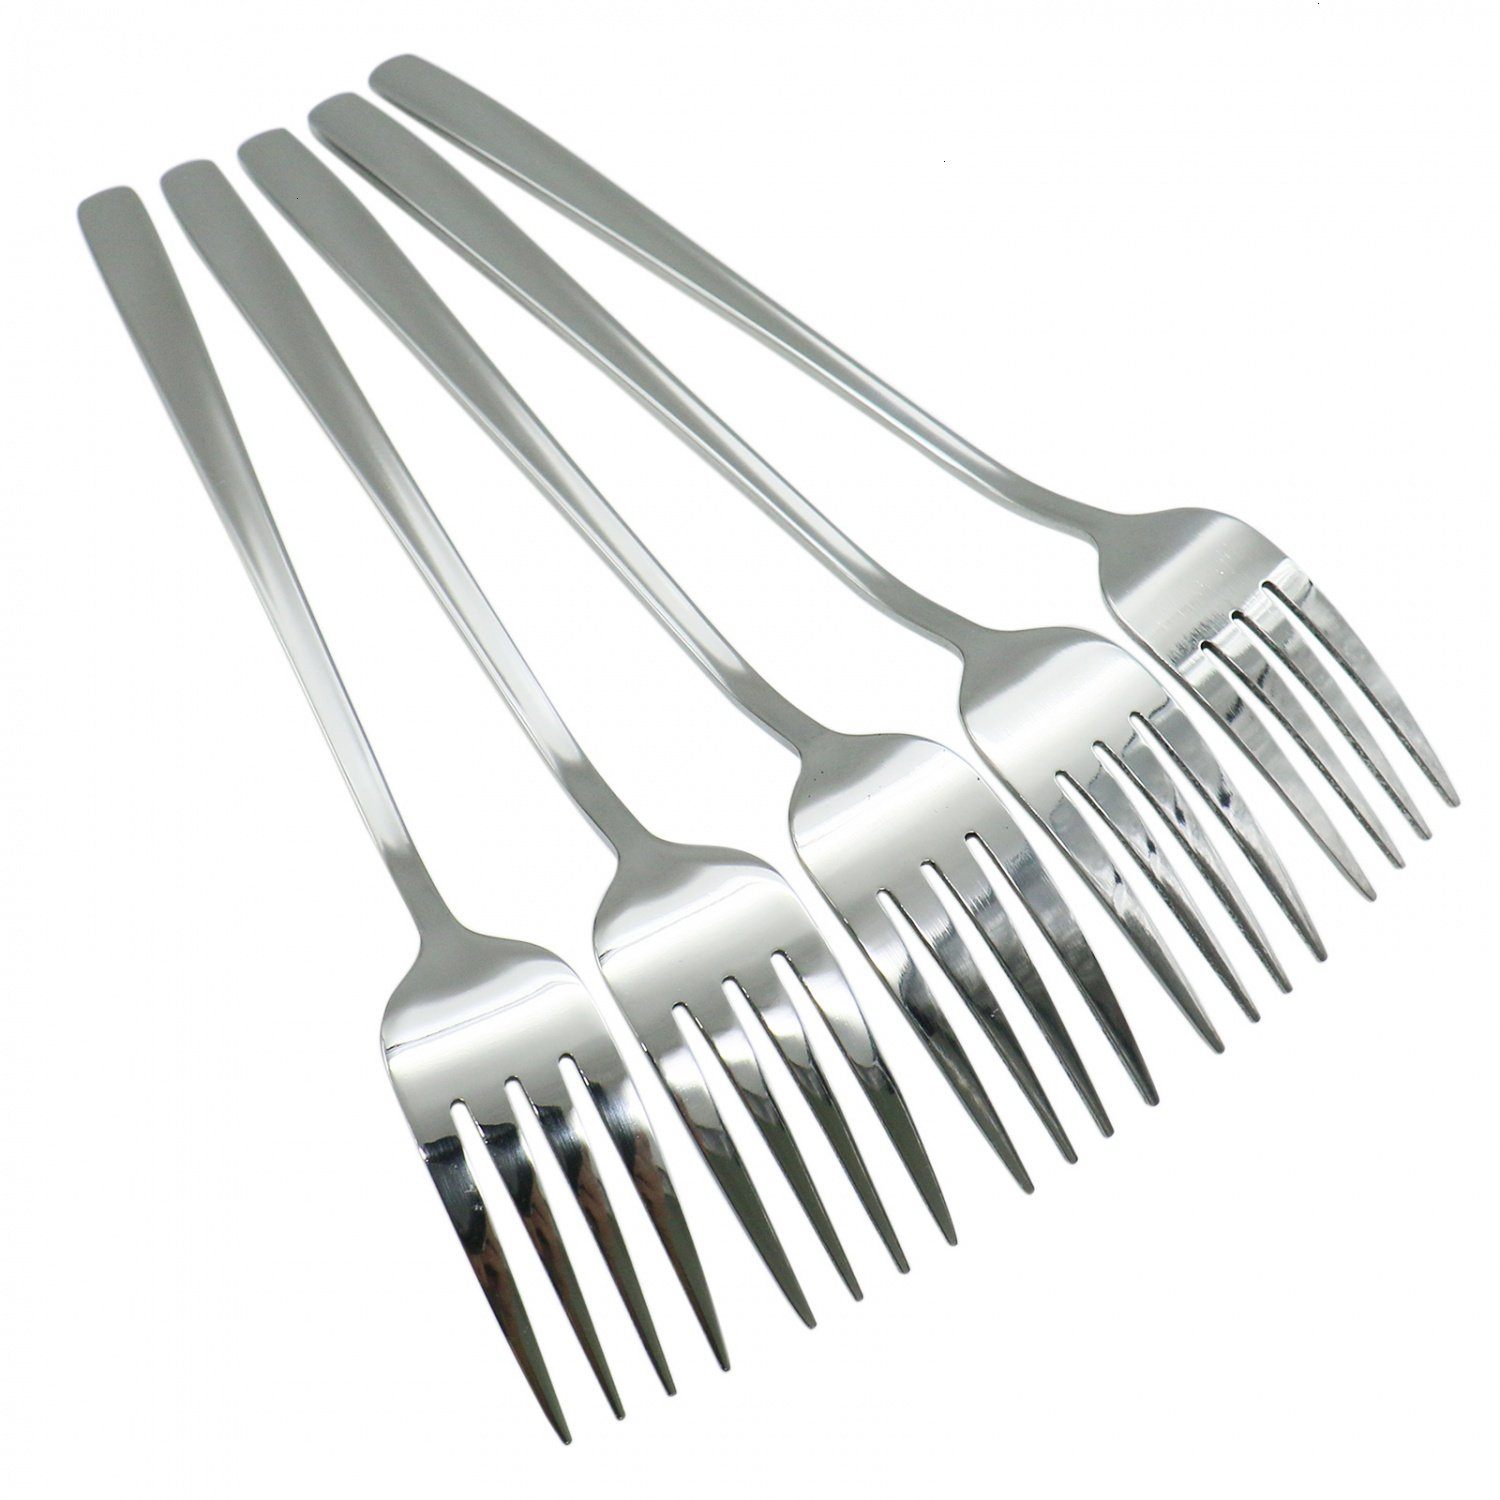 HUELE Set of 5 Korean Stainless Steel Table Forks Dinner Fork Set Long-handled Great Circle Forks